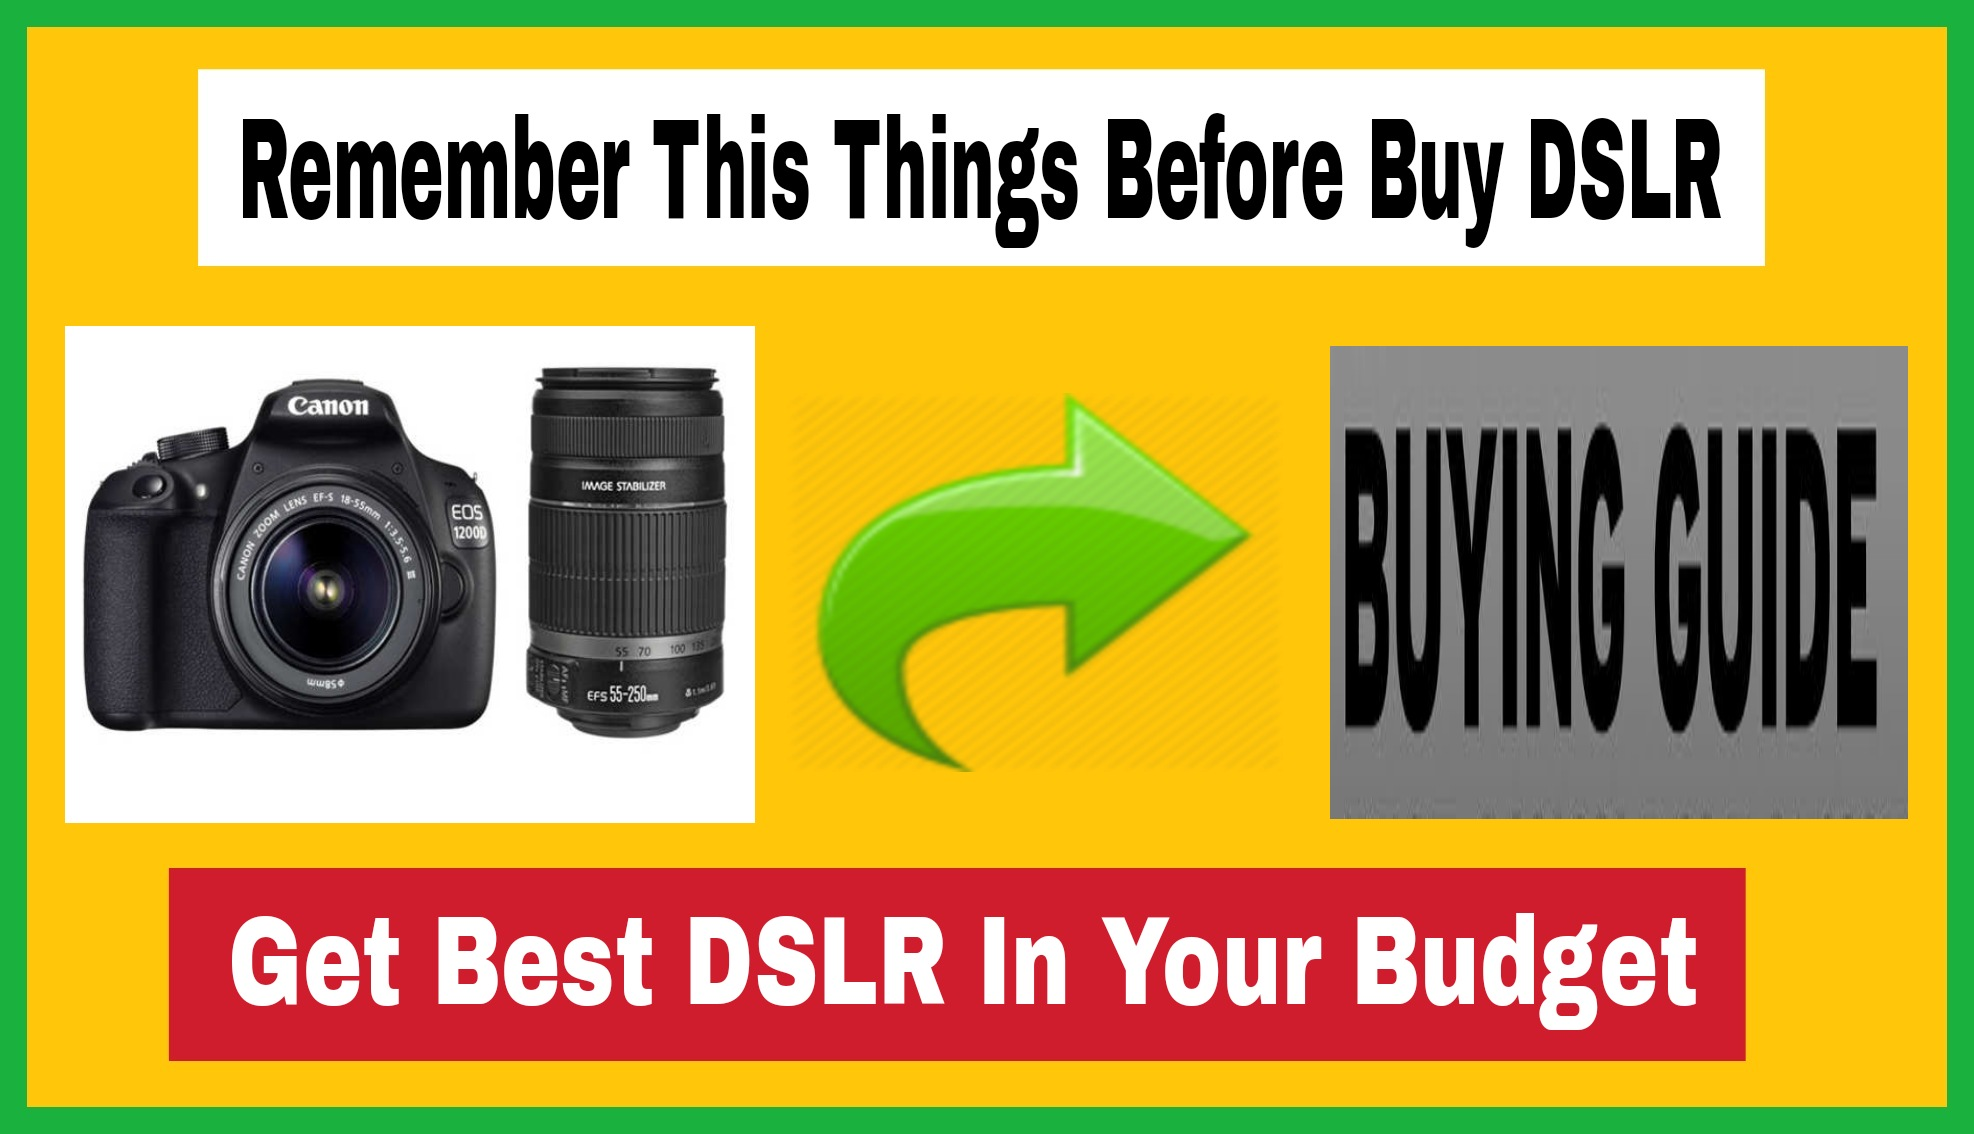 Remember This Things Before Buy DSLR